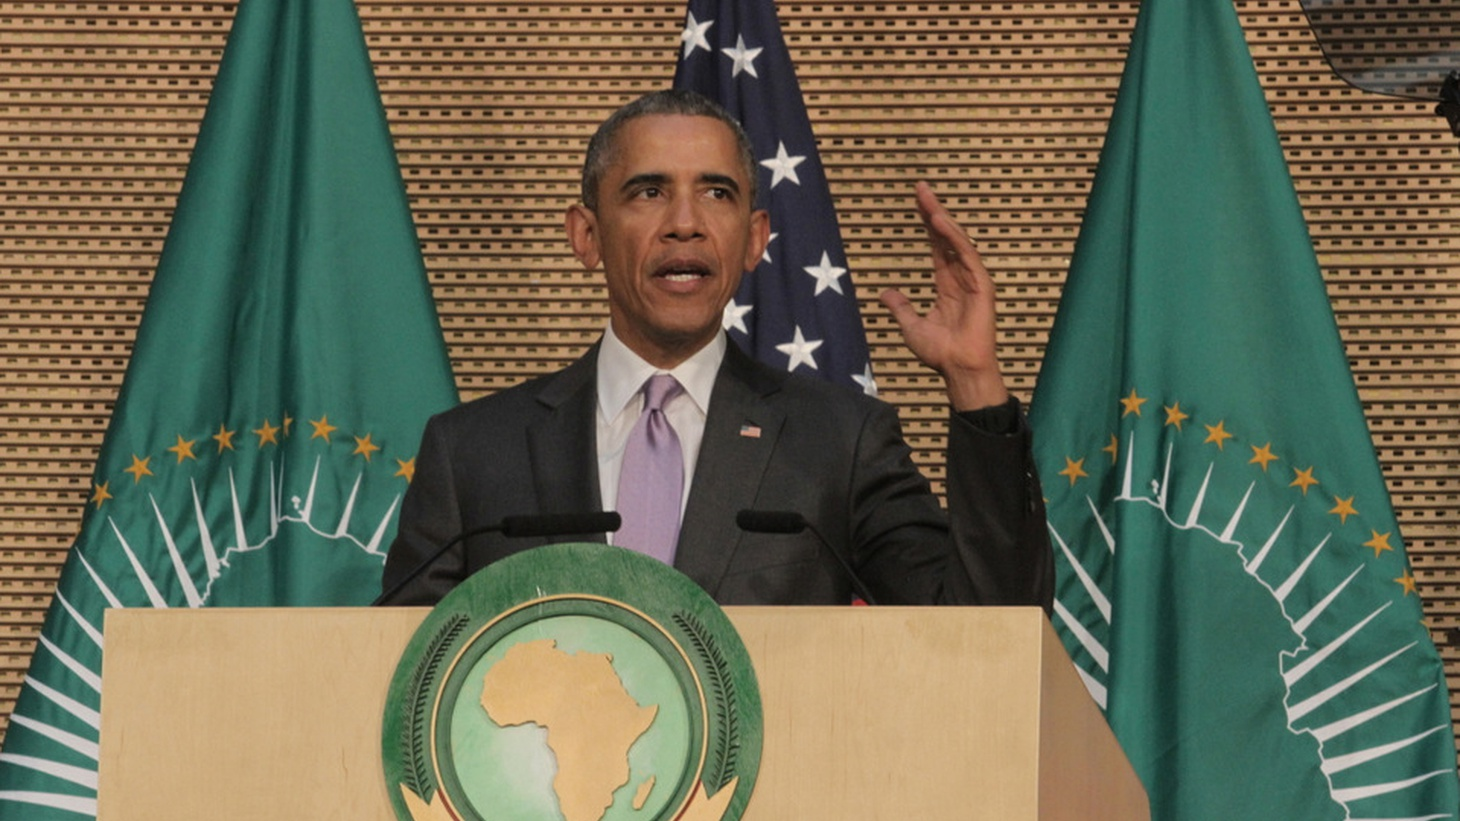 Four years ago, President Obama celebrated South Sudan as the world's newest nation. Today, at a meeting of the African Union, he was urging its East African neighbors to help stop that country's devastating civil war.